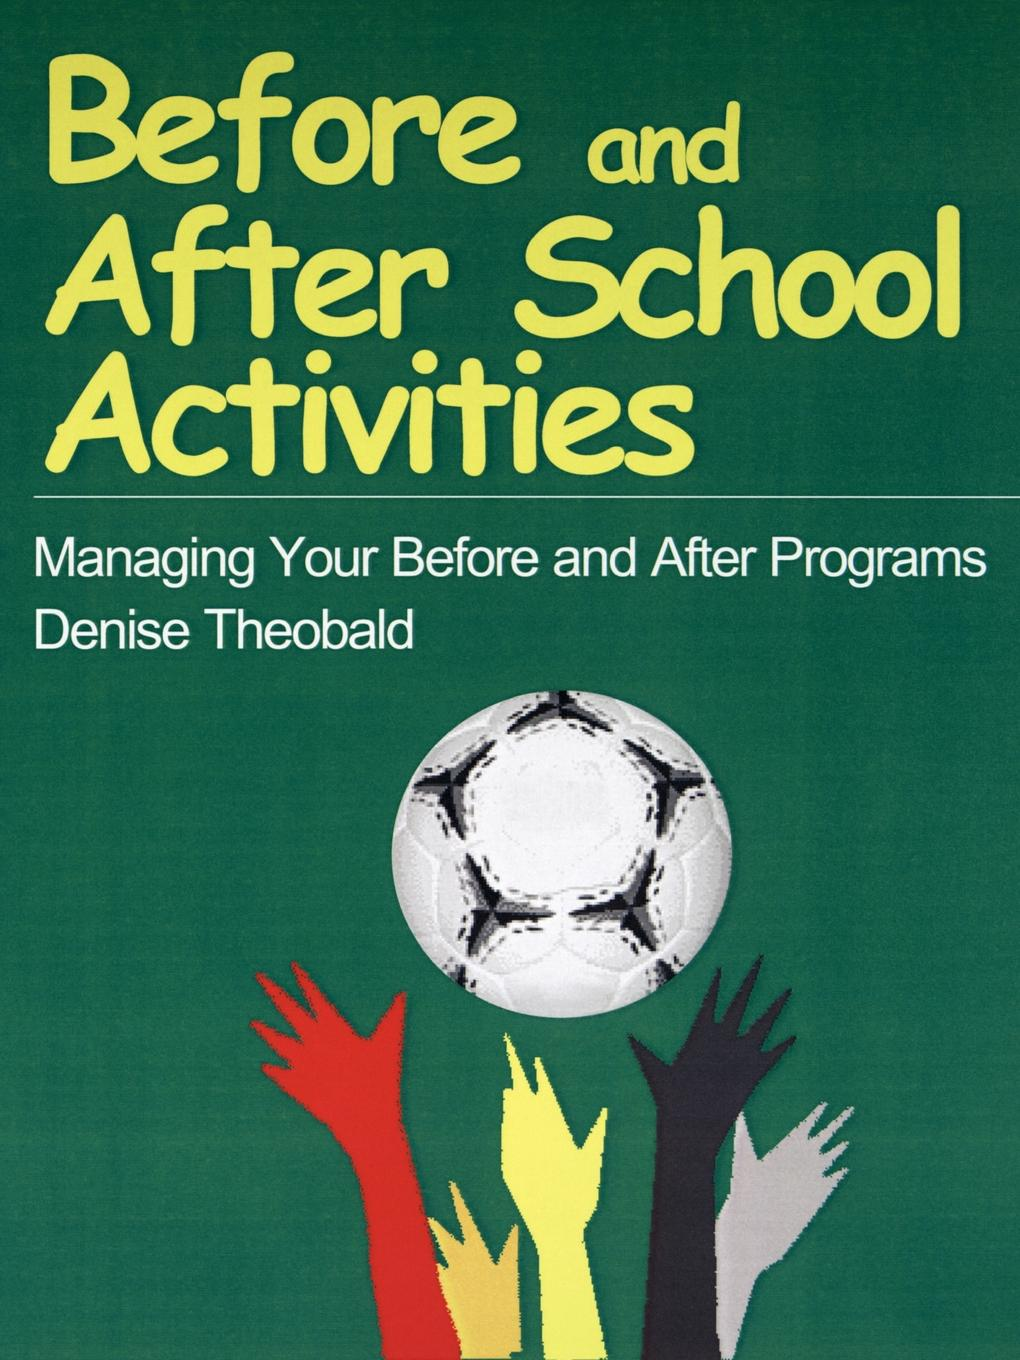 Before and After School Acivities By: Denise Theobald